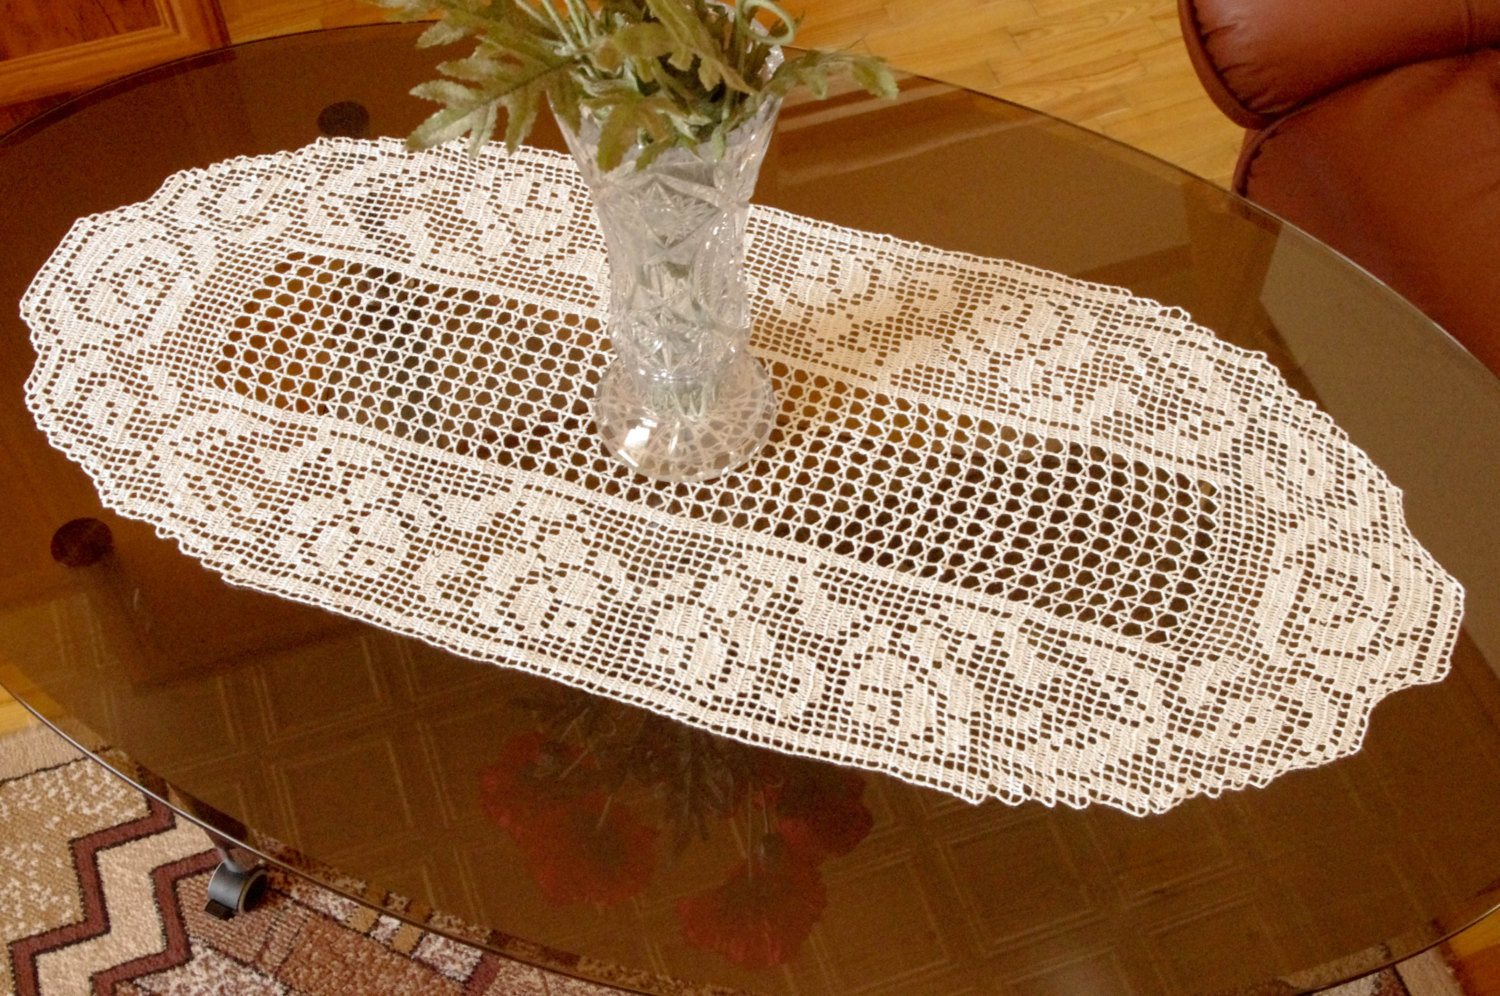 Crochet Runner Best Of Crochet Table Runner White Runner Lace Runner Crochet Of Fresh 45 Ideas Crochet Runner